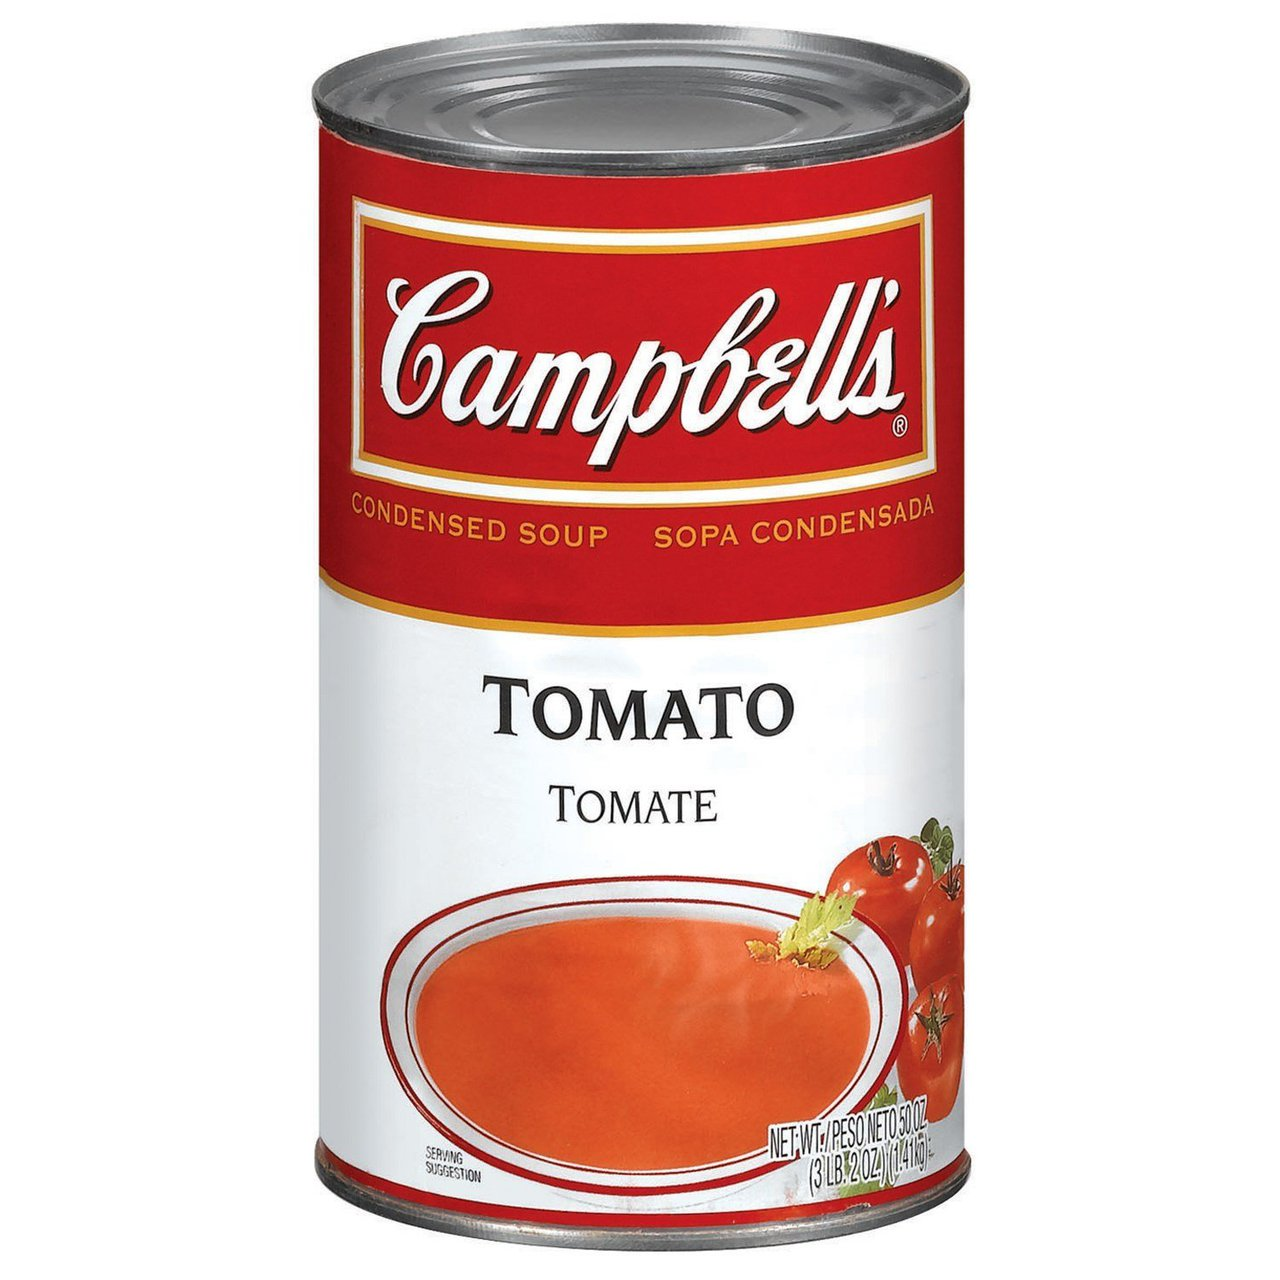 12 PACKS : Campbell's Tomato Soup 50 OZ